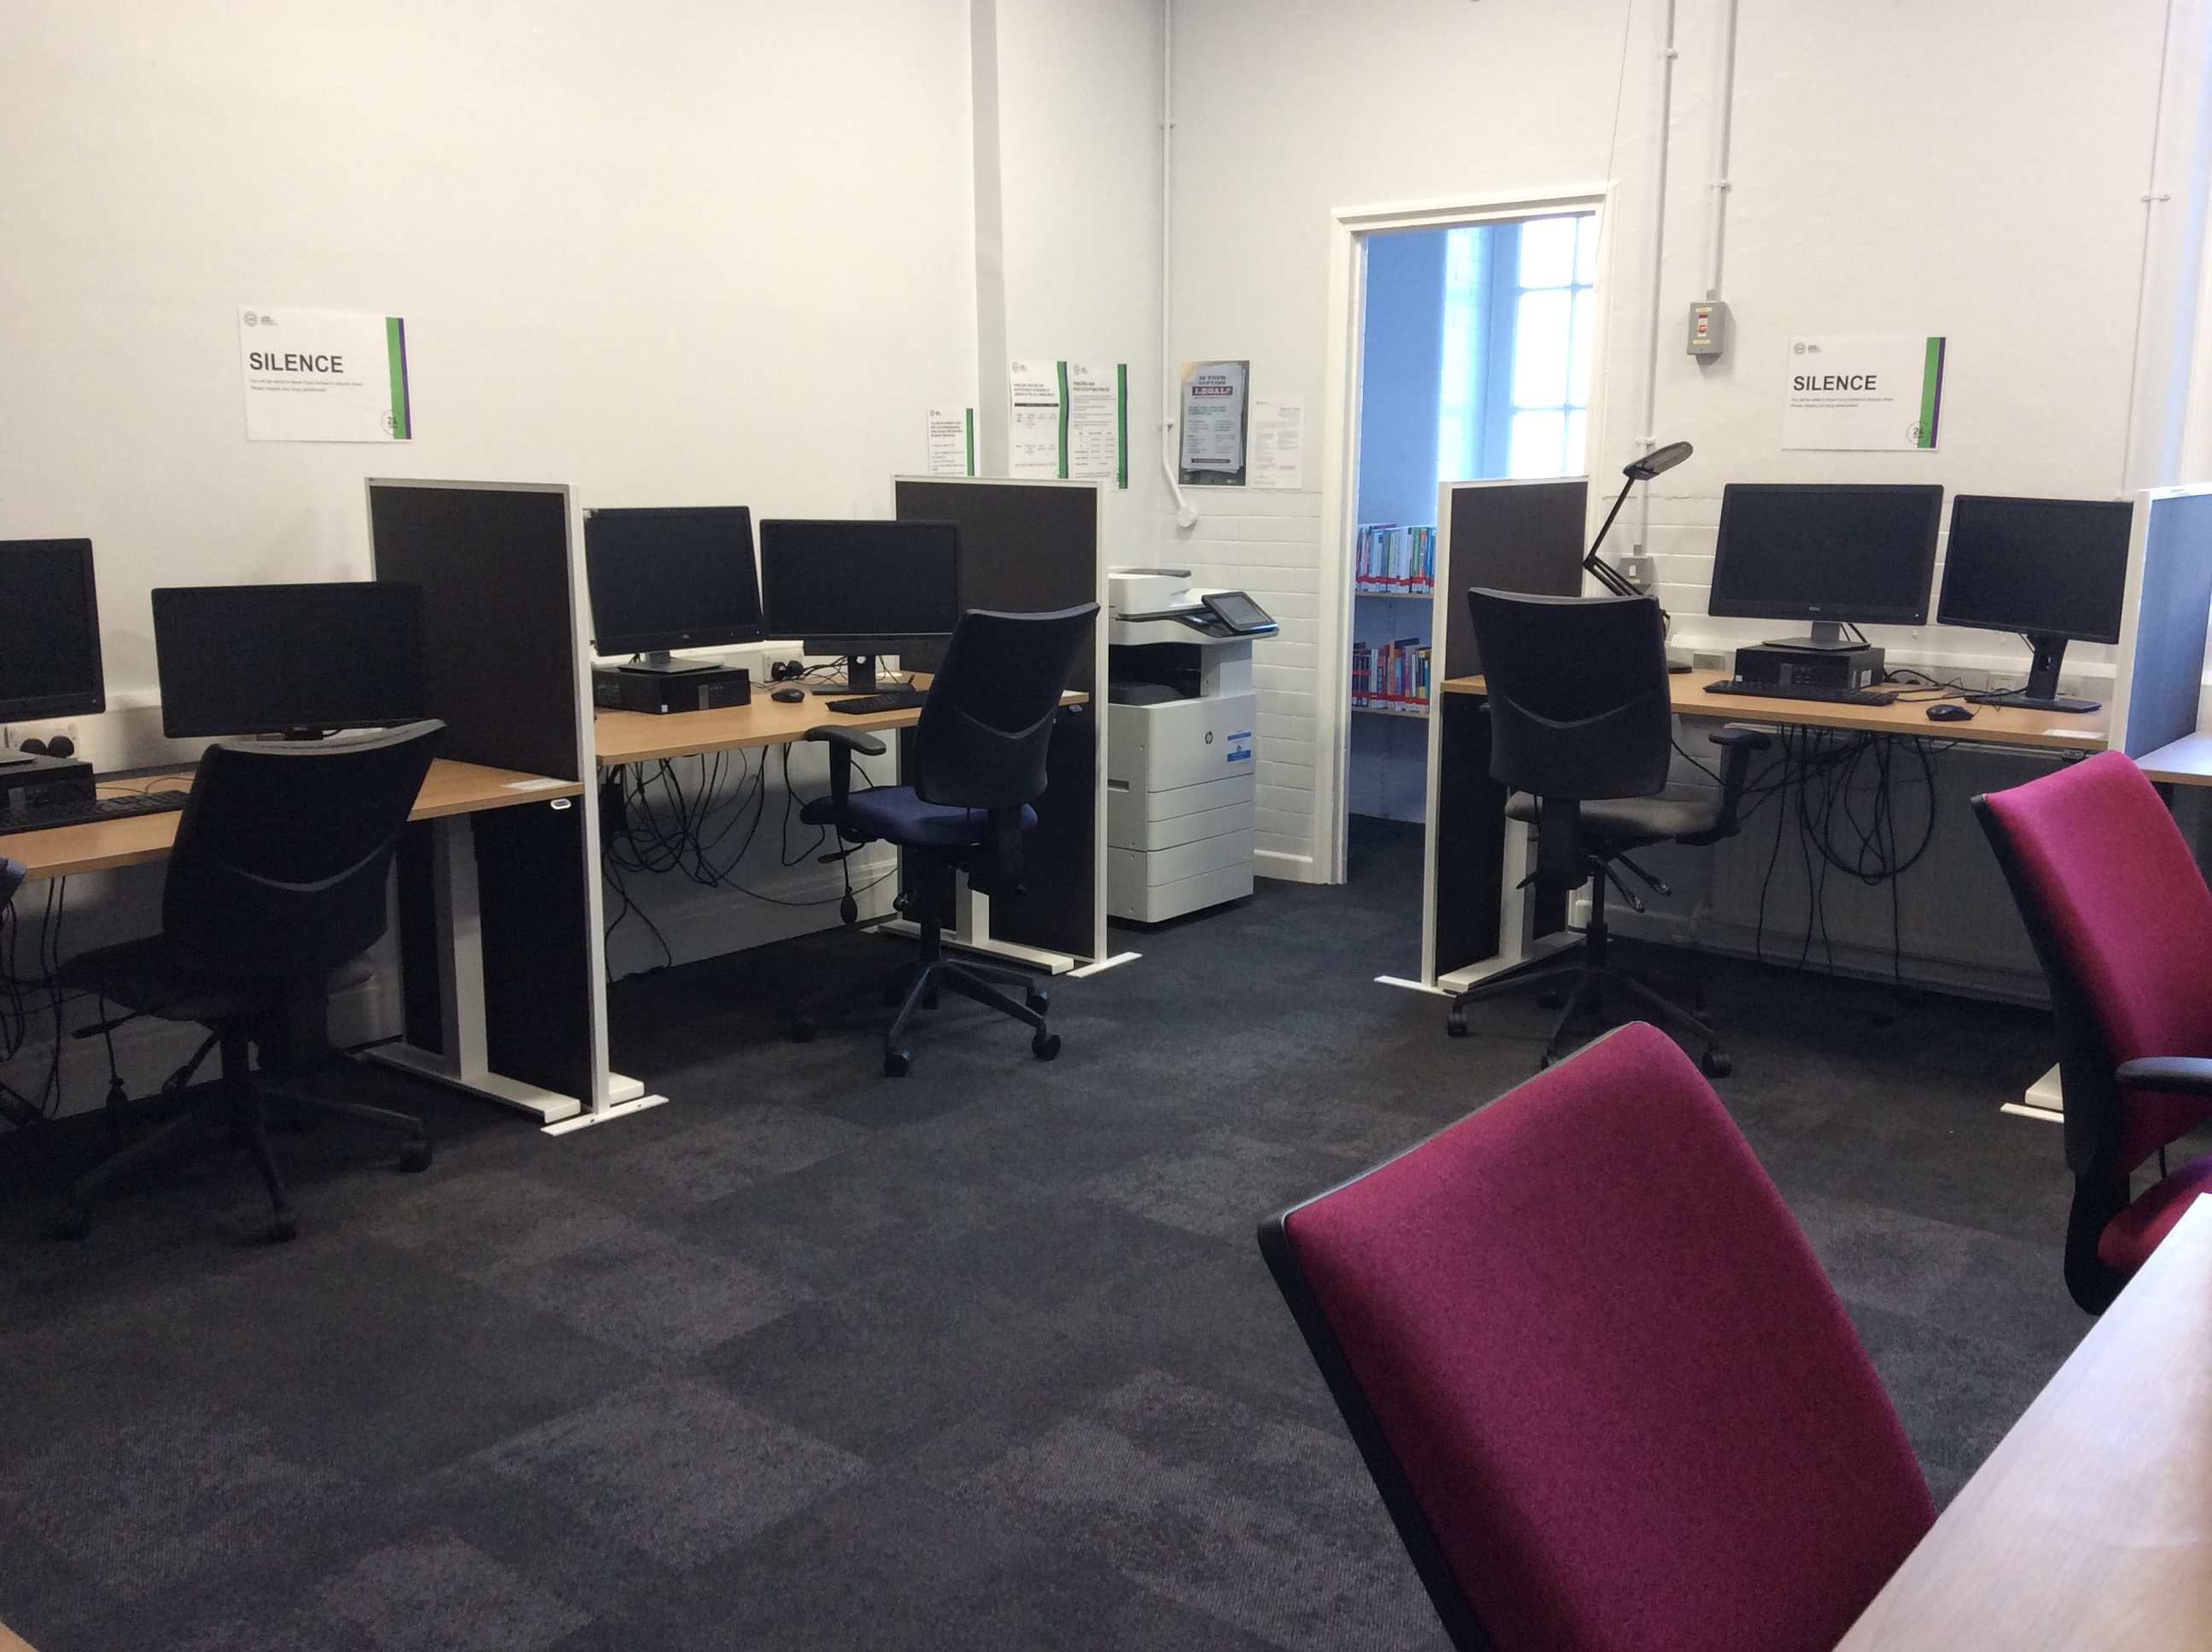 The Disability Resource Area at Sheila Silver Library has a calm and minimalist feel. There are several PCs separated by desk dividers. There is a printer in the corner and a collection of books through a doorway at the back.